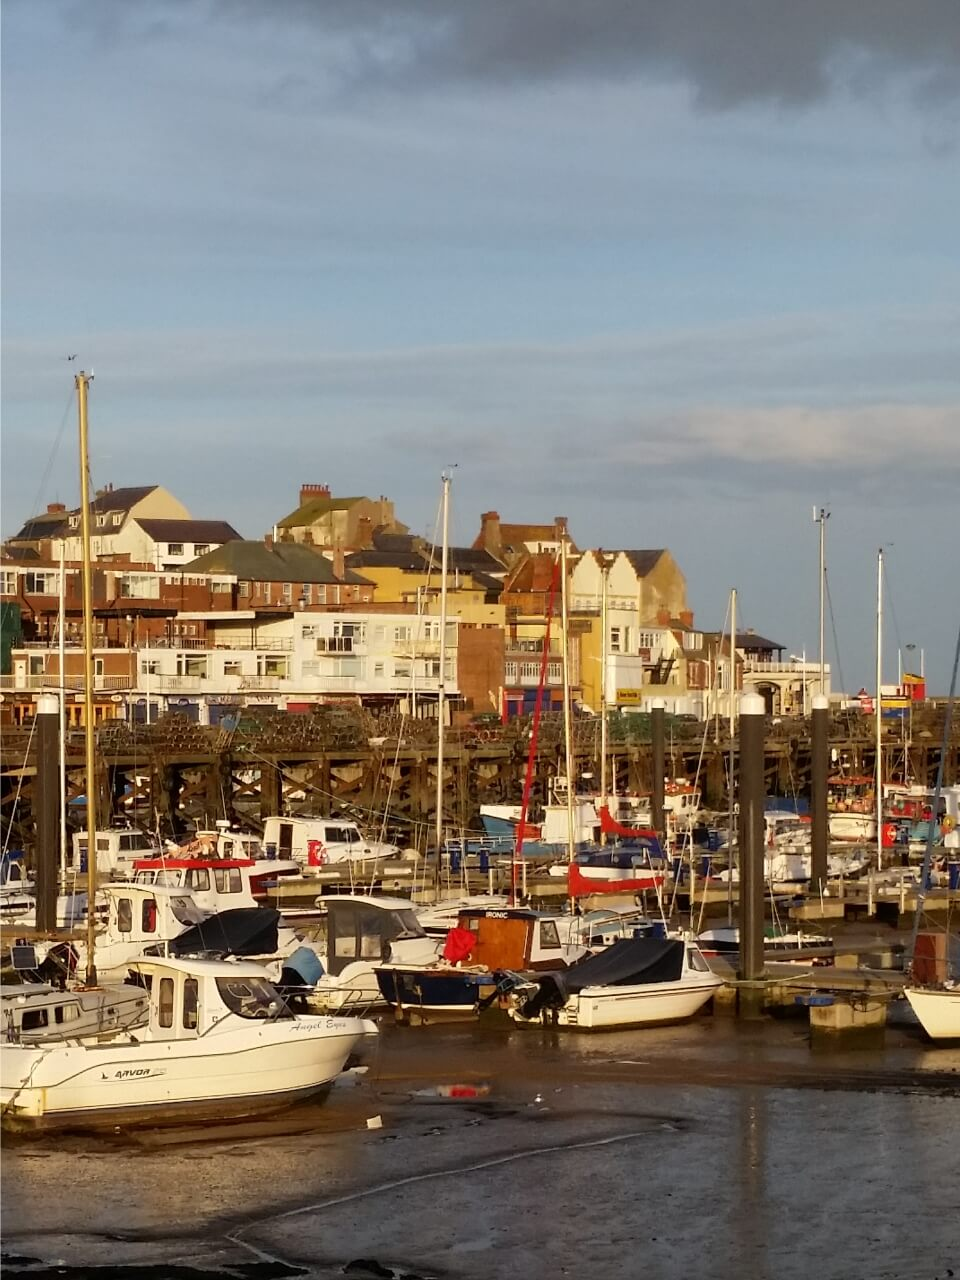 St Hilda Guest House Bridlington Harbour boats